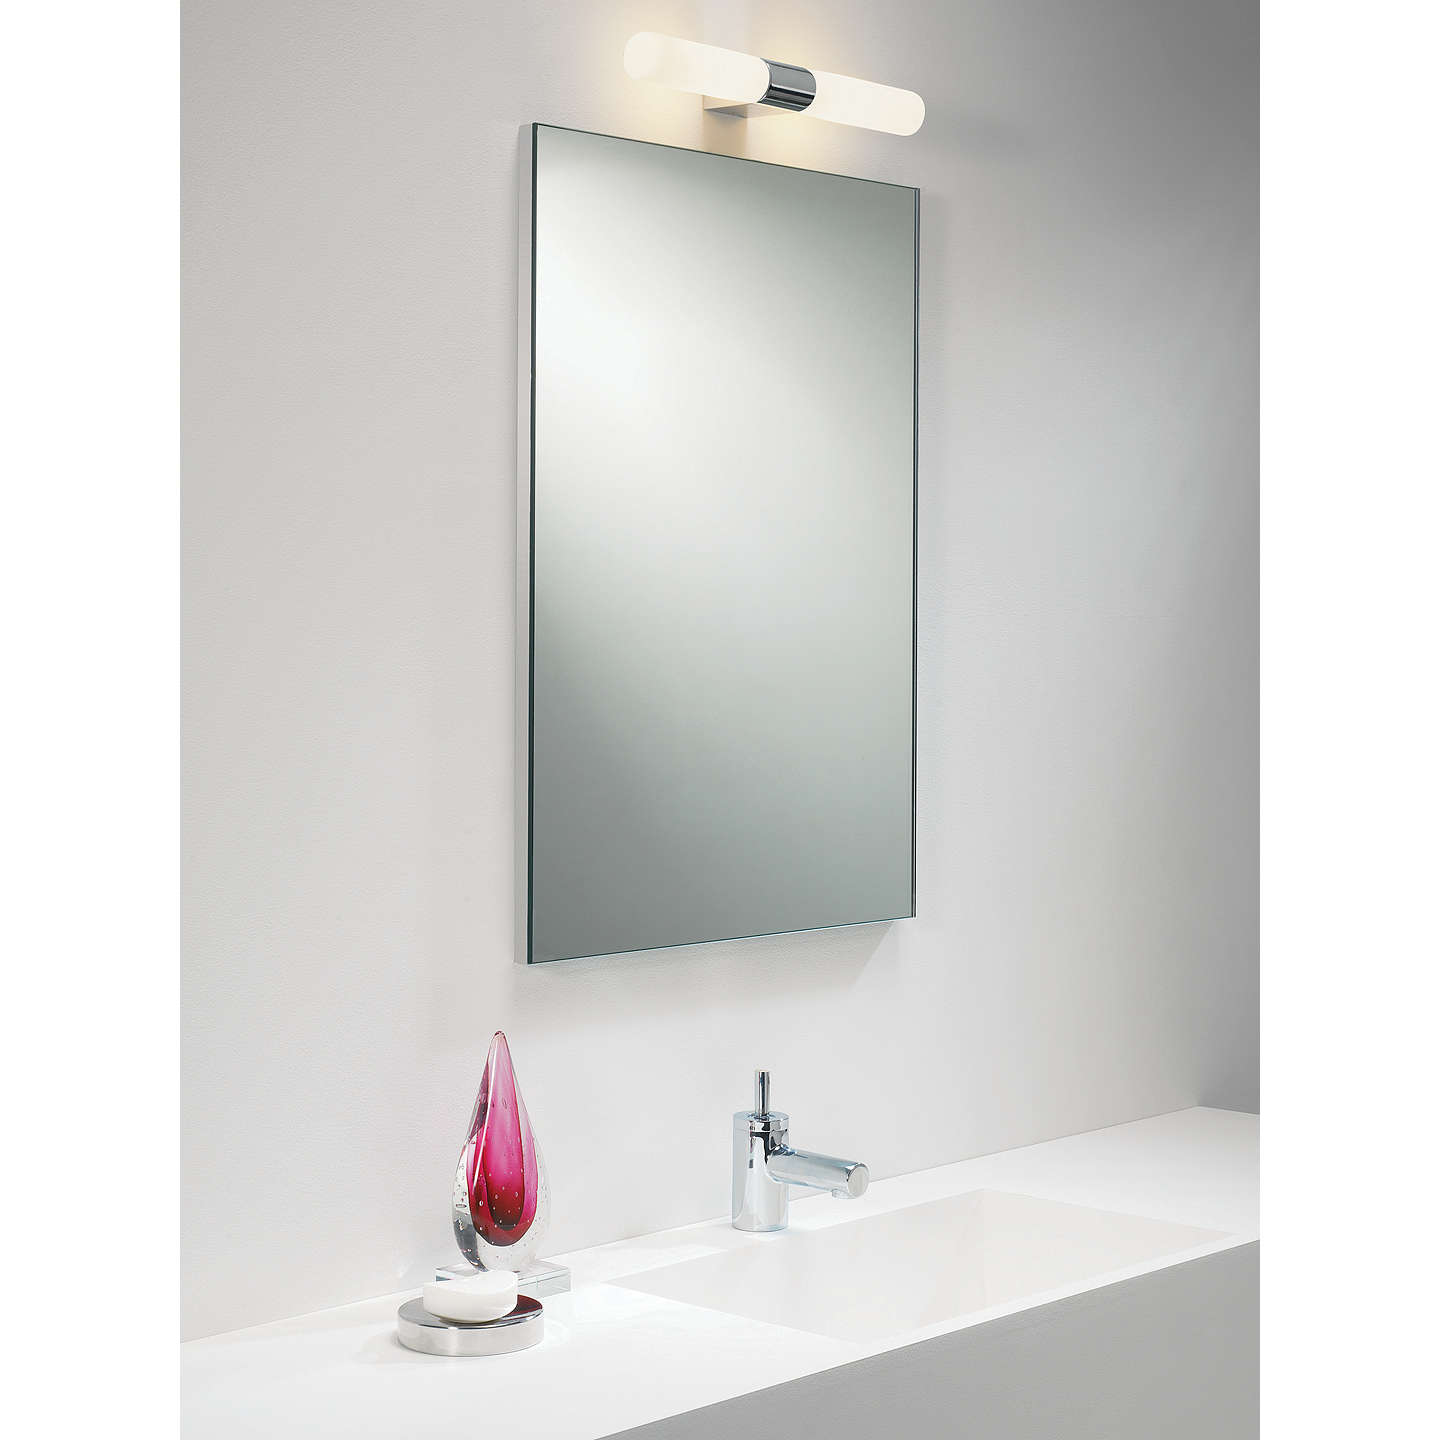 mirrors with lights for bathroom astro mirror bathroom light at lewis 23787